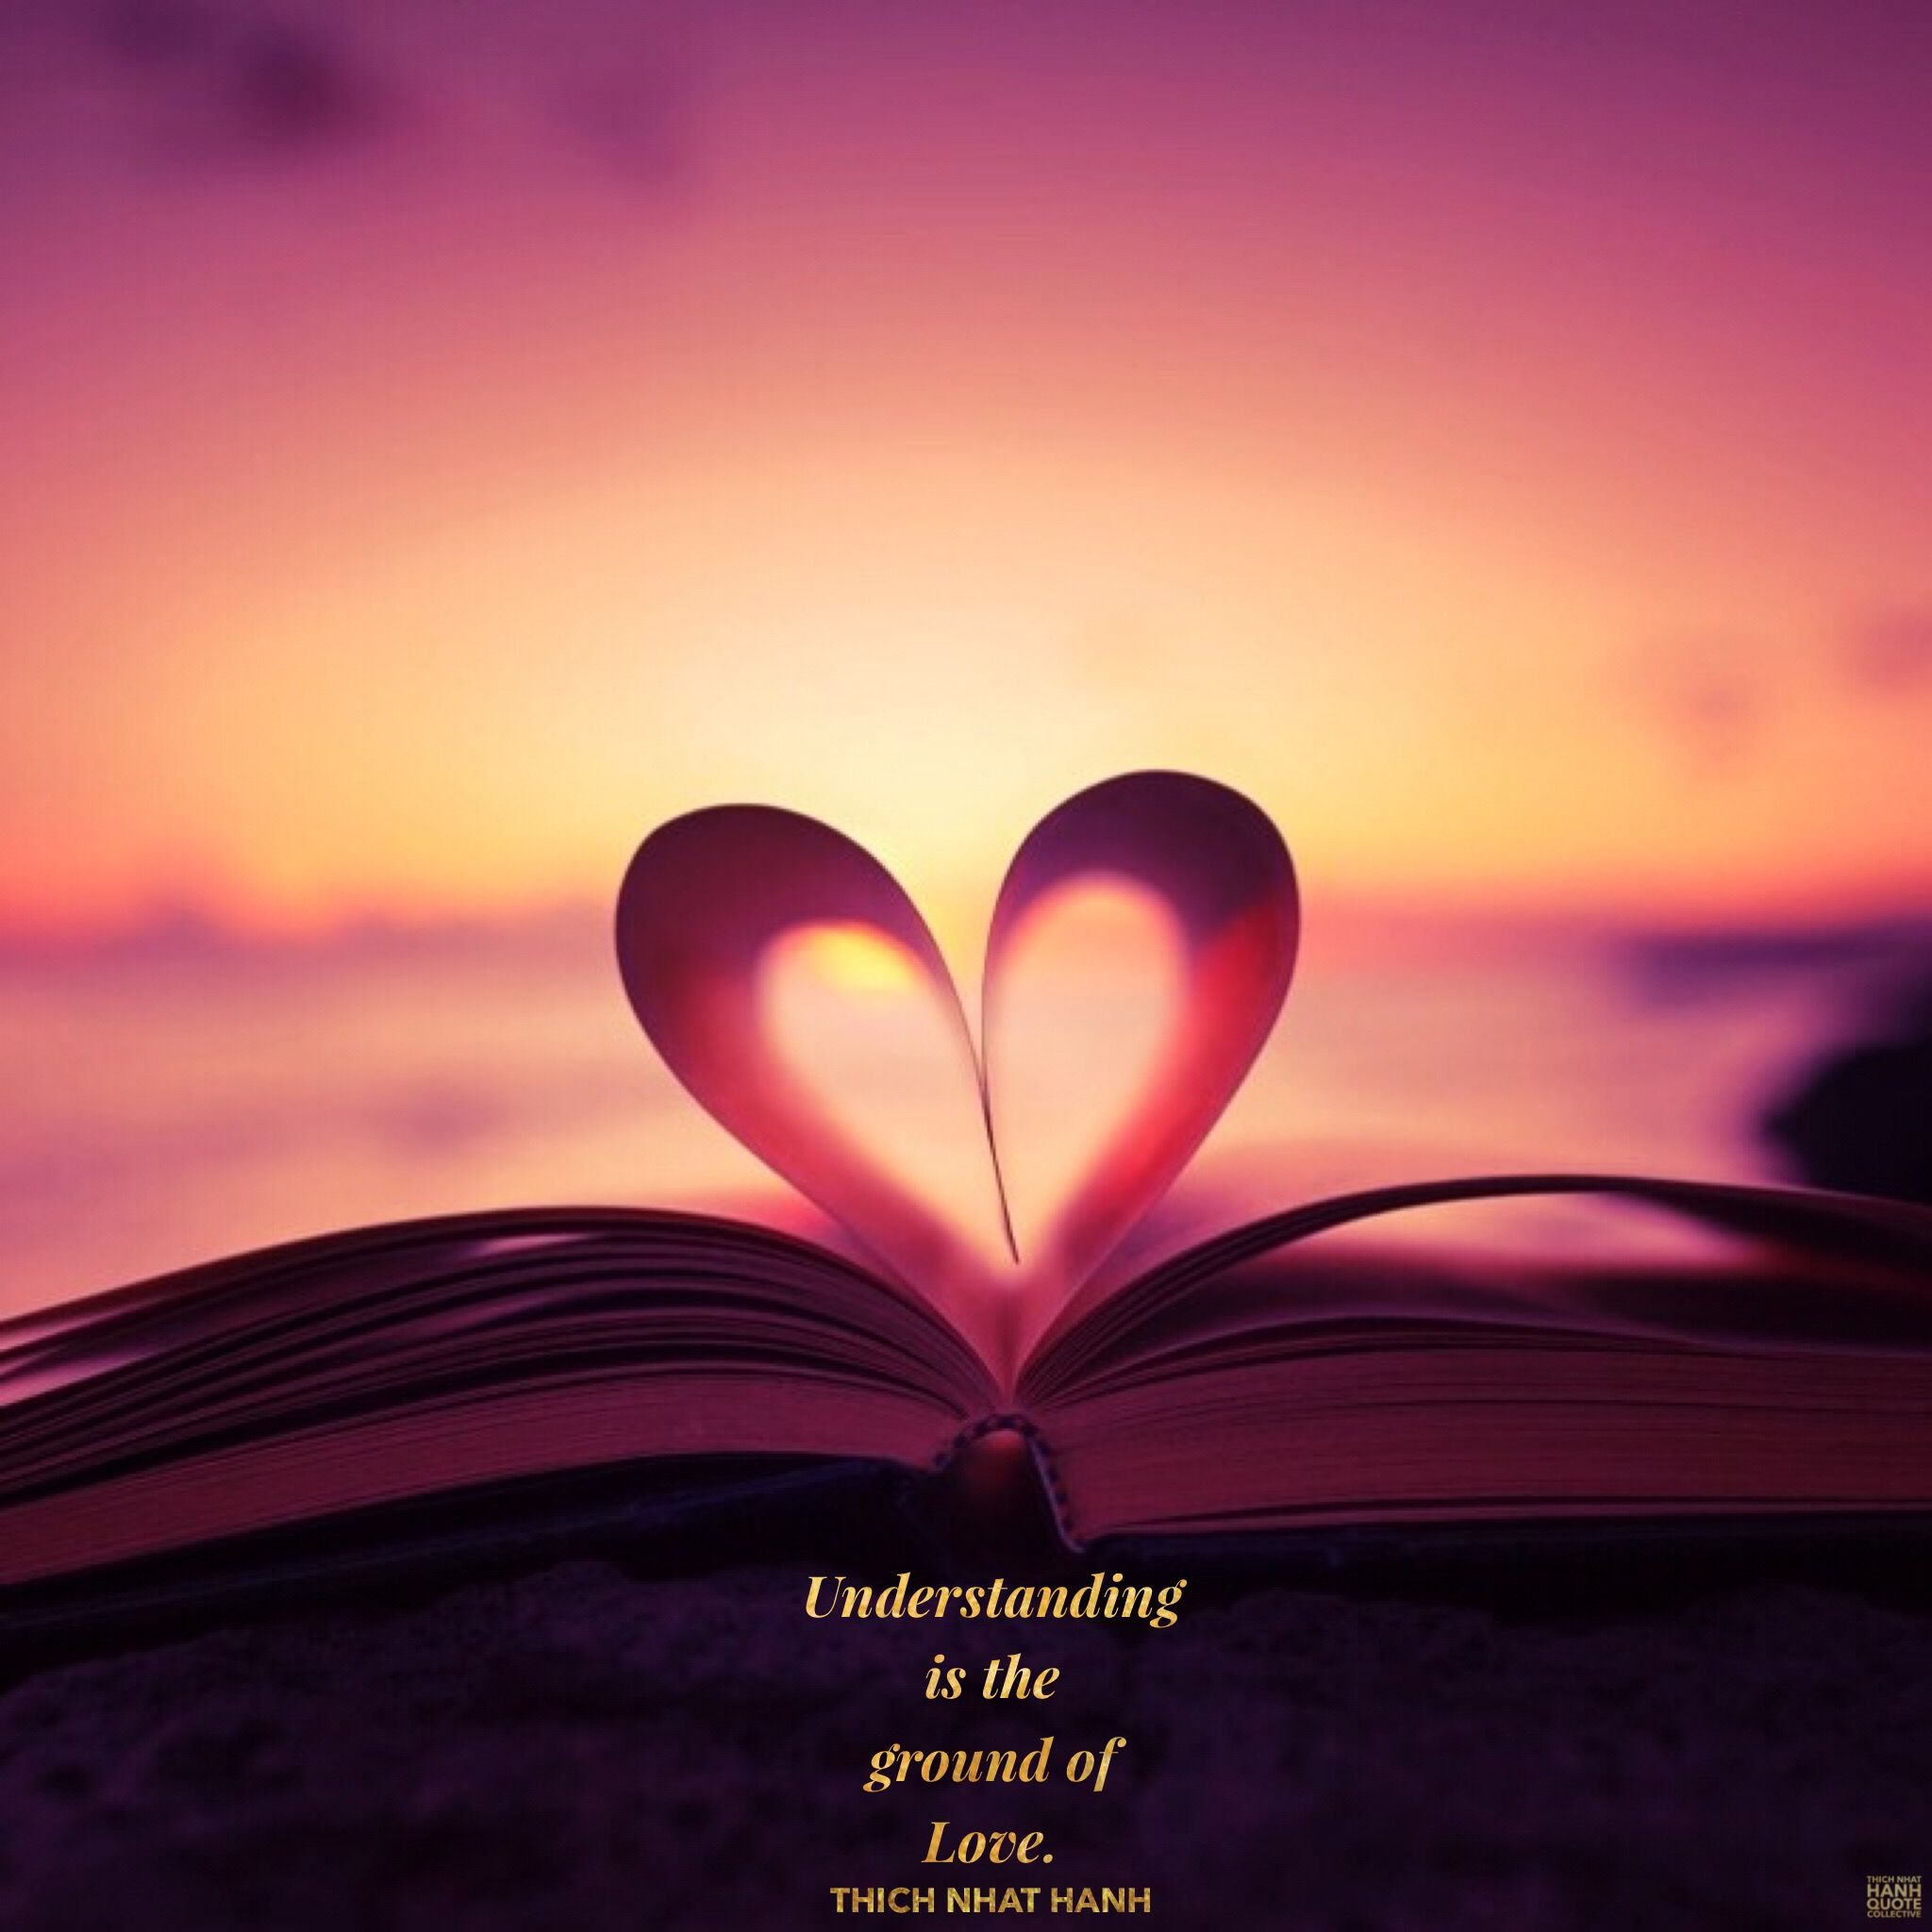 Understanding Is The Ground Of Love Thich Nhat Hanh Thichnhathanhquotecollective Thaysaid Thay B Best Love Quotes Silent Love Love Binding Spell